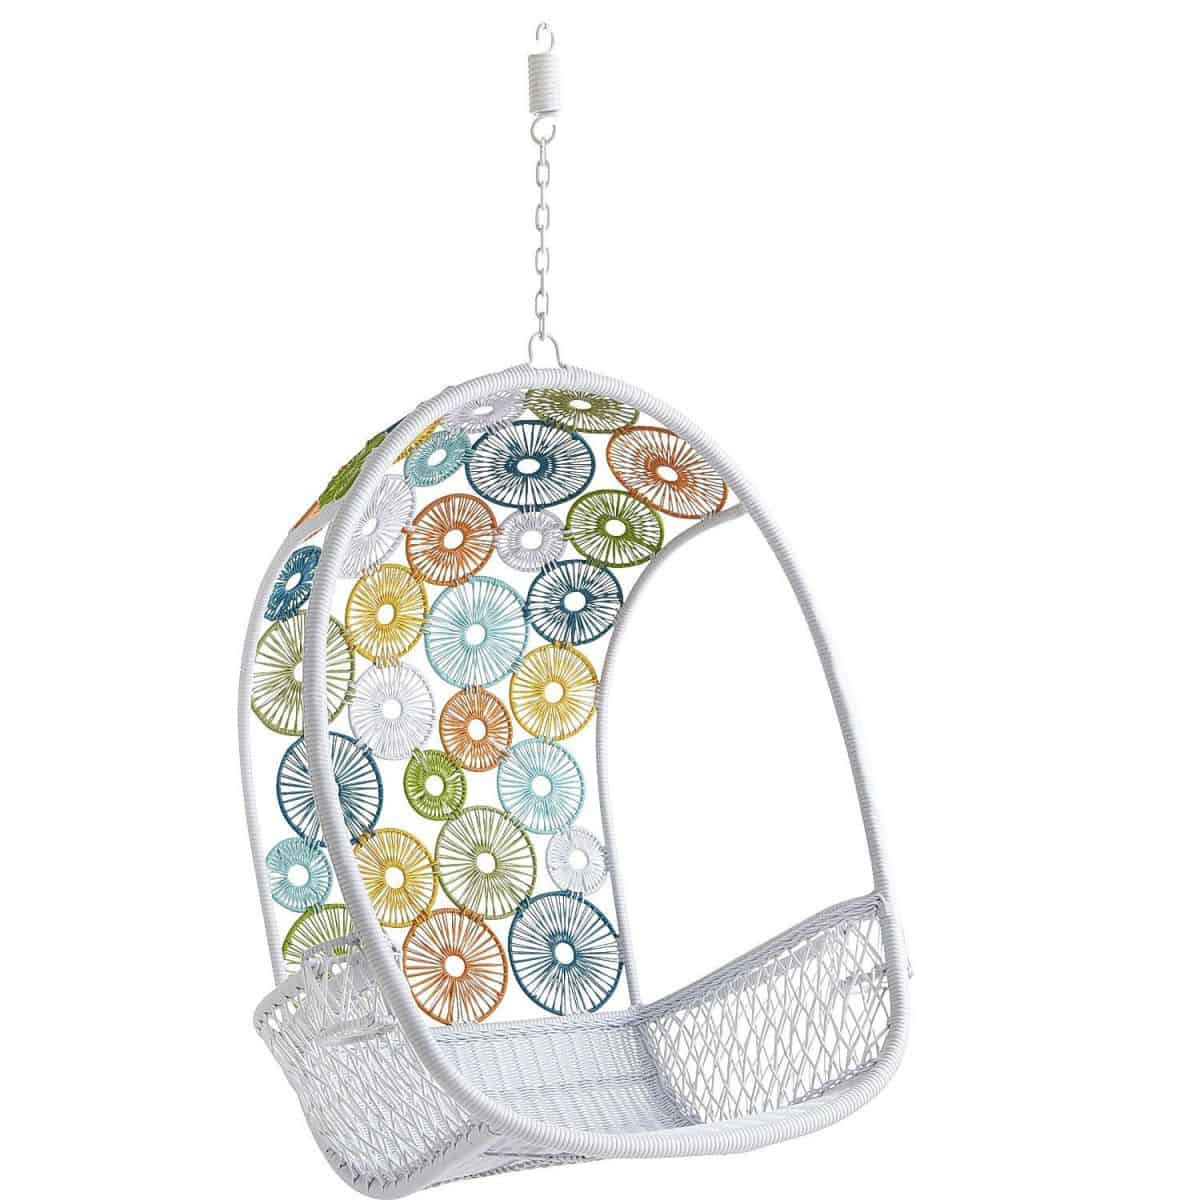 pier 1 circle chair dining room vinyl covers hello wonderful 10 awesome hanging chairs for kids